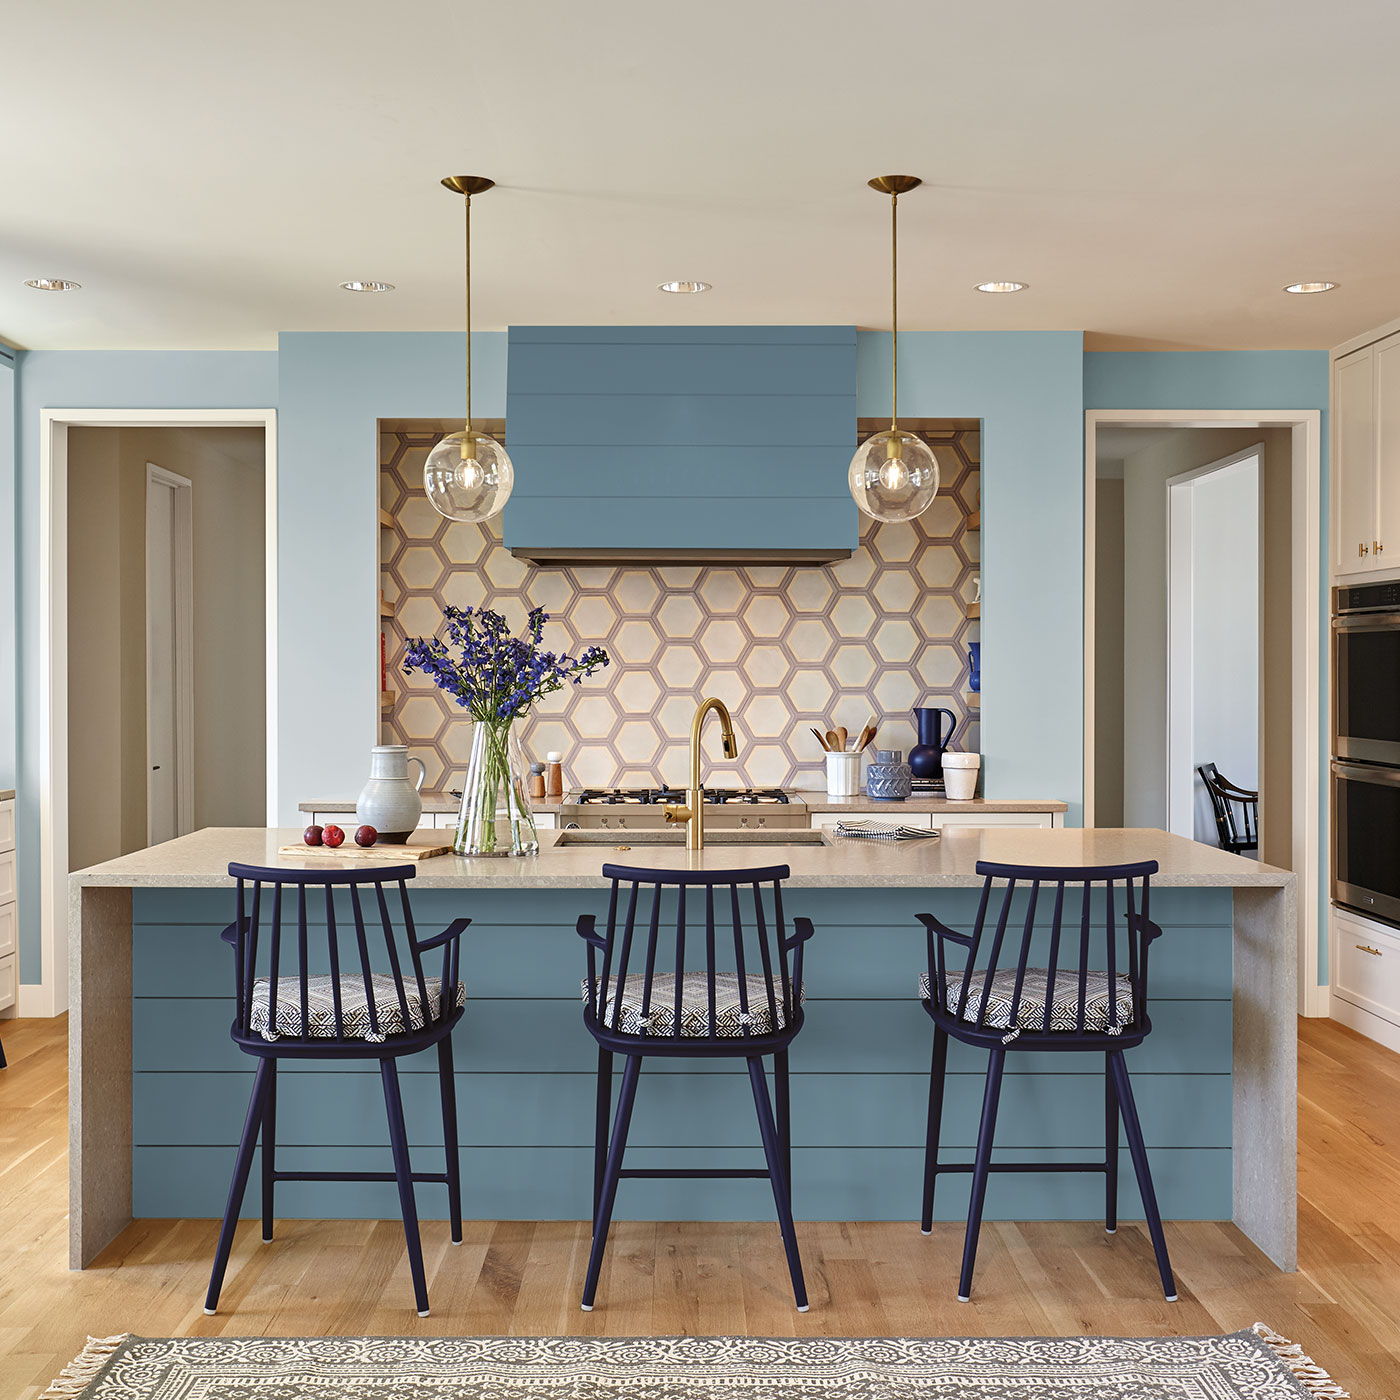 color binge curated palette 2019 color trends behr paint rh behr com Bath Color Trends Home Color Trends for 2019